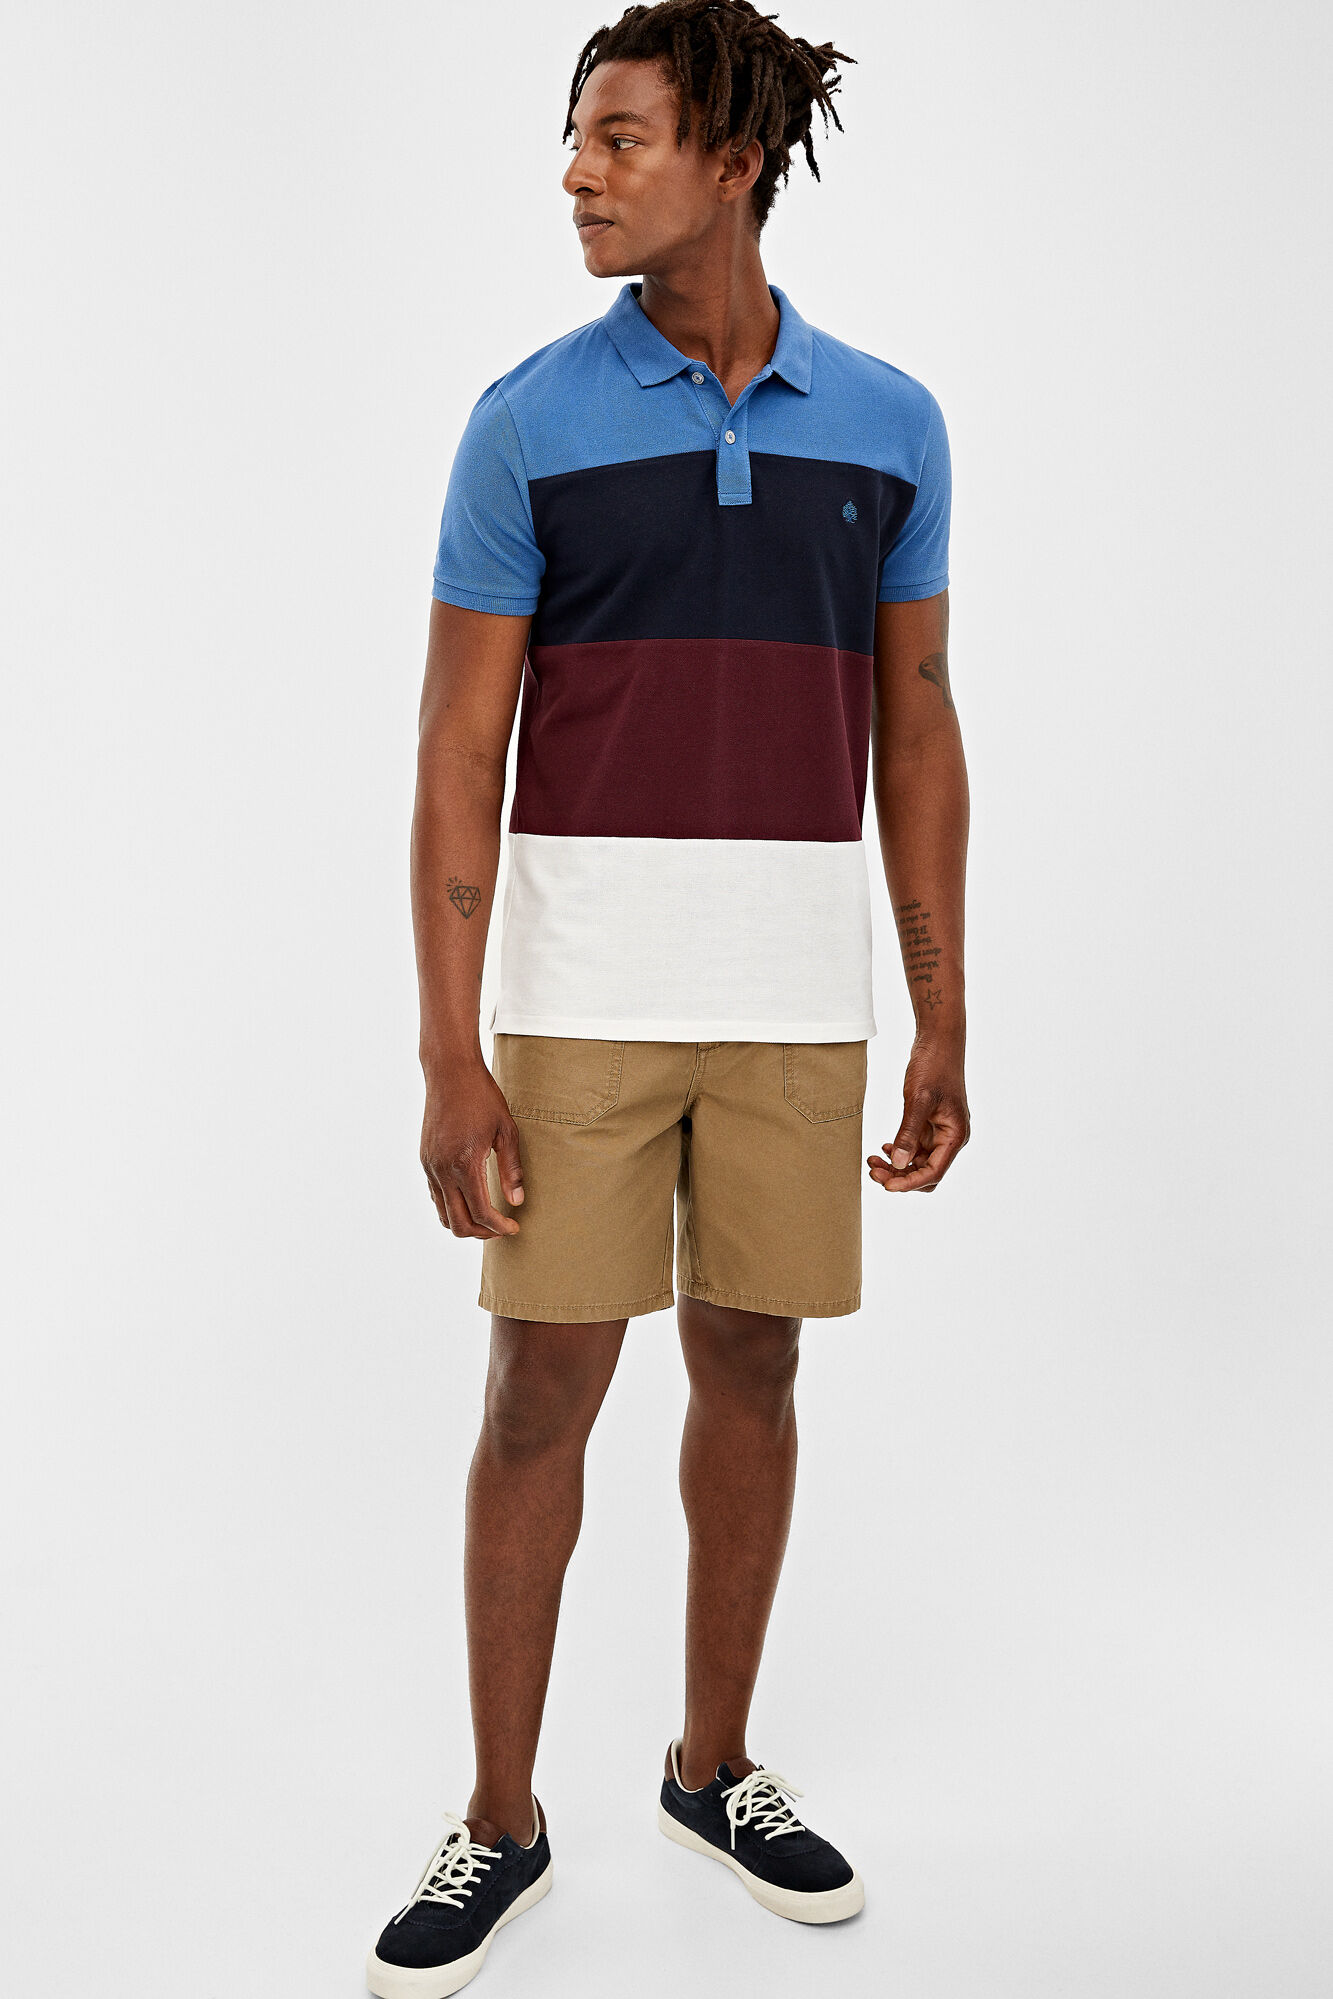 polo shirts with shorts